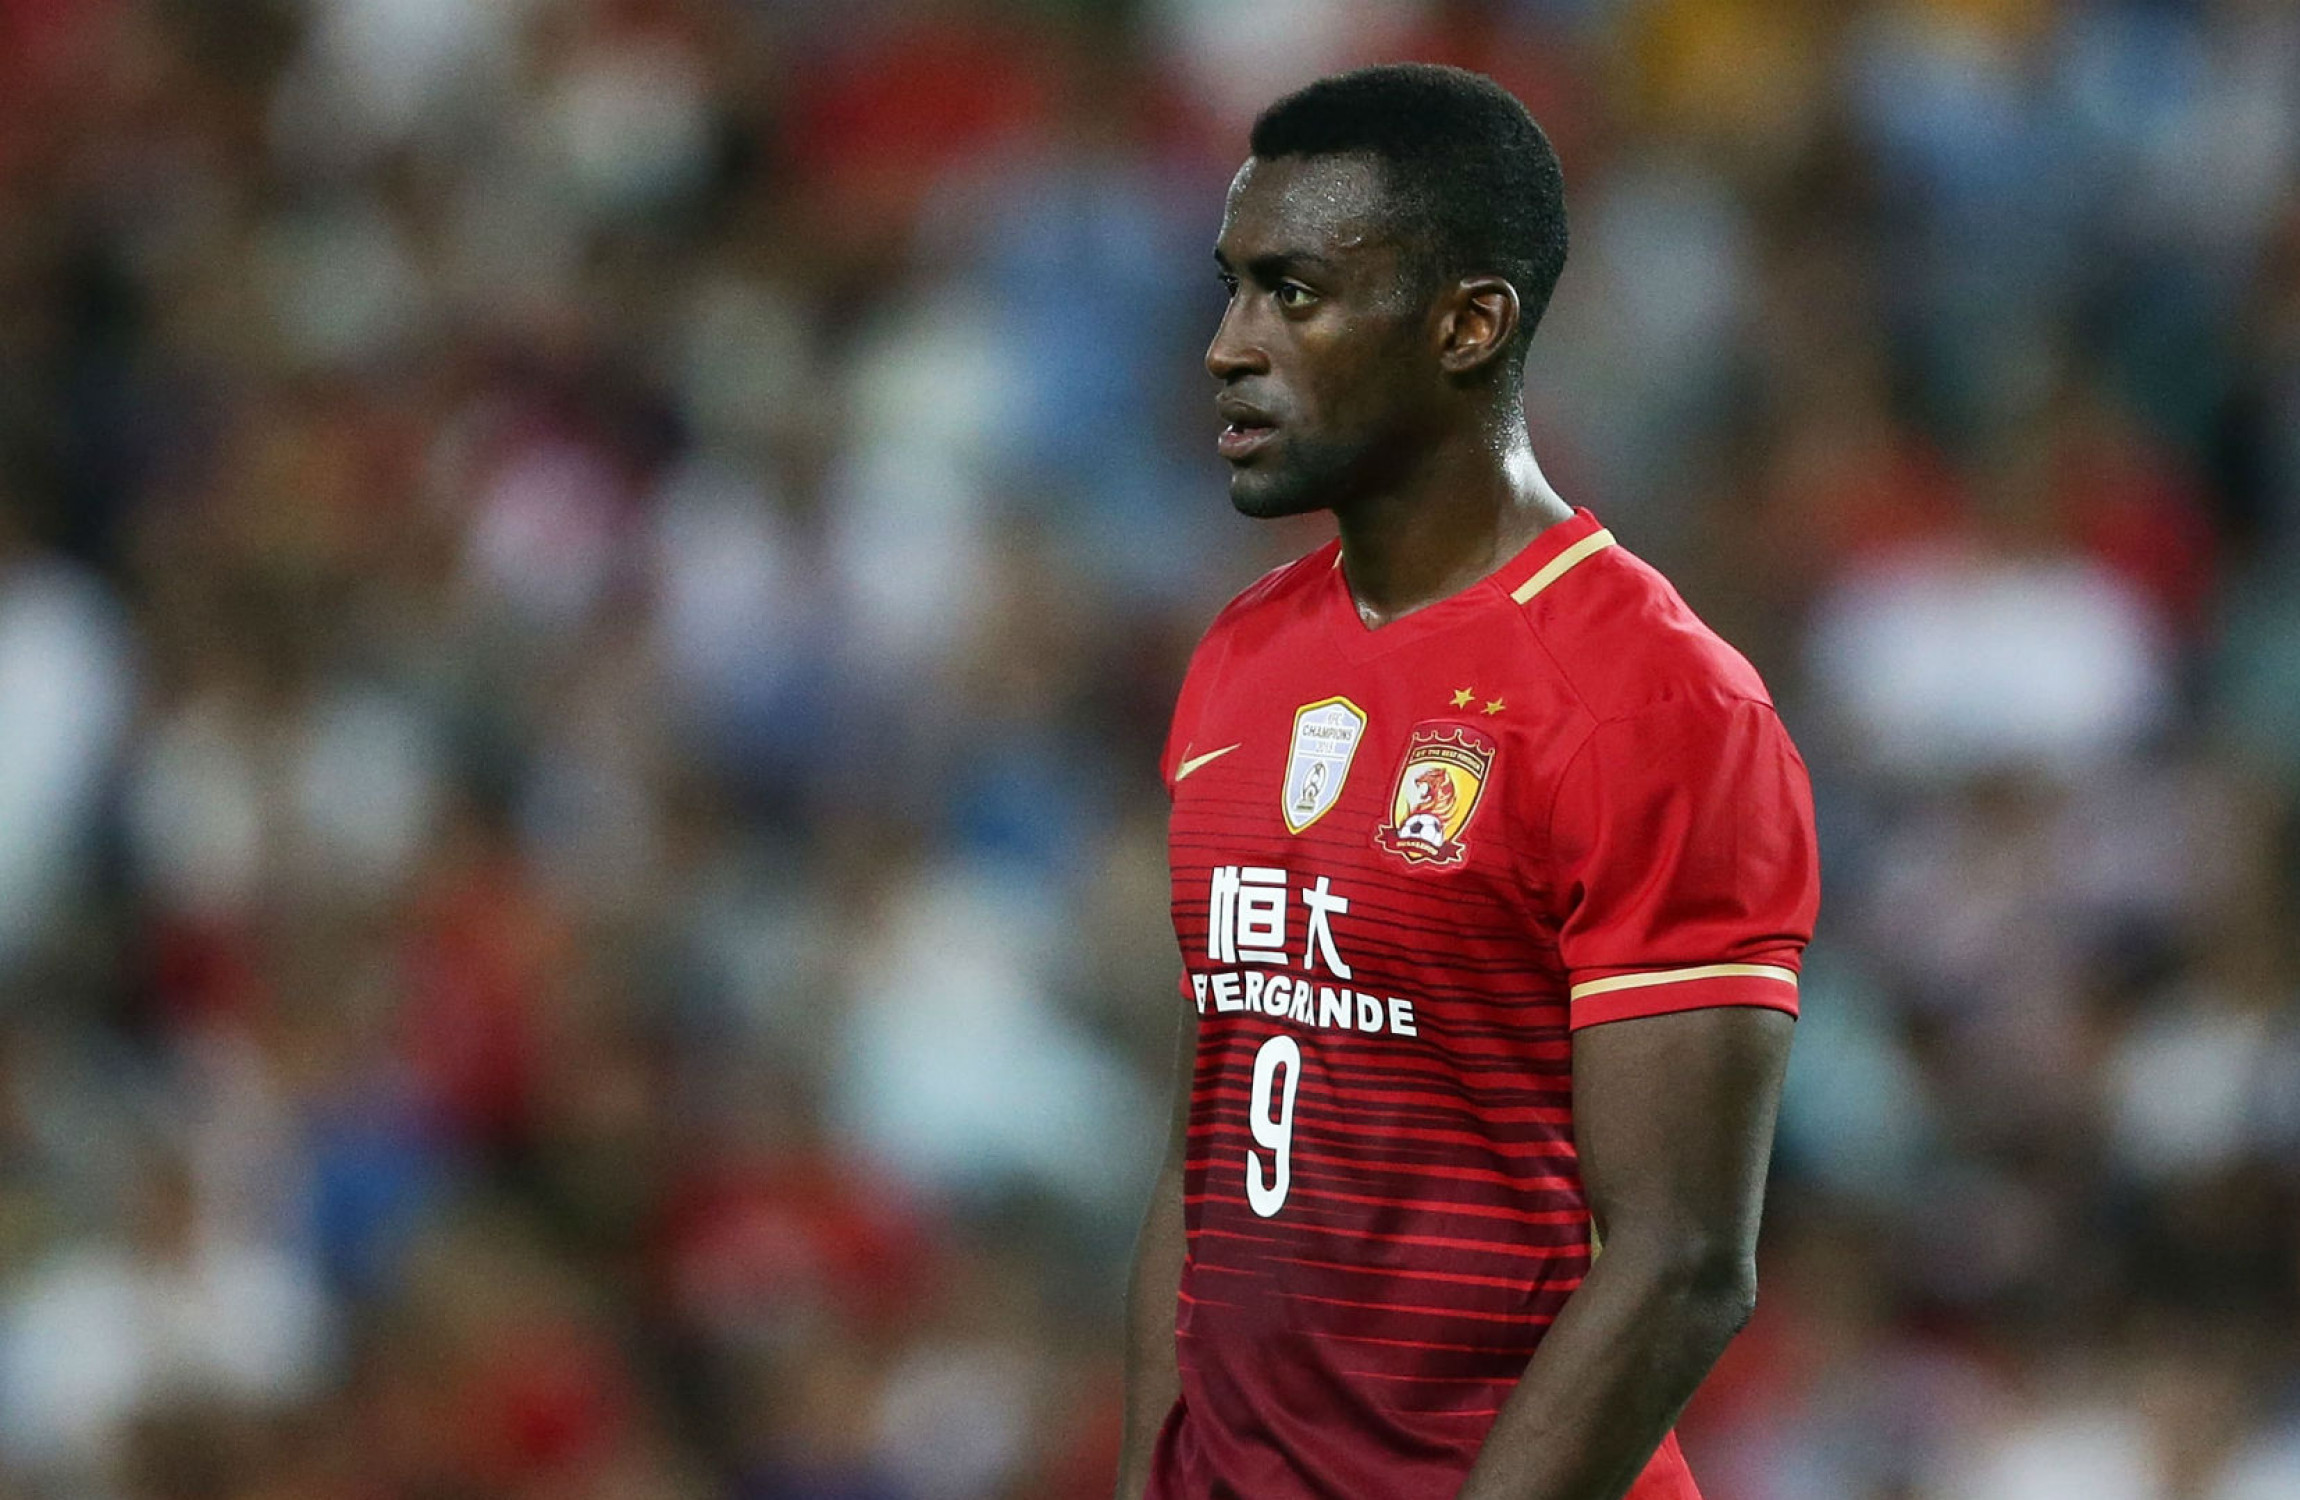 Chinese teams hope to stop dominant Guangzhou